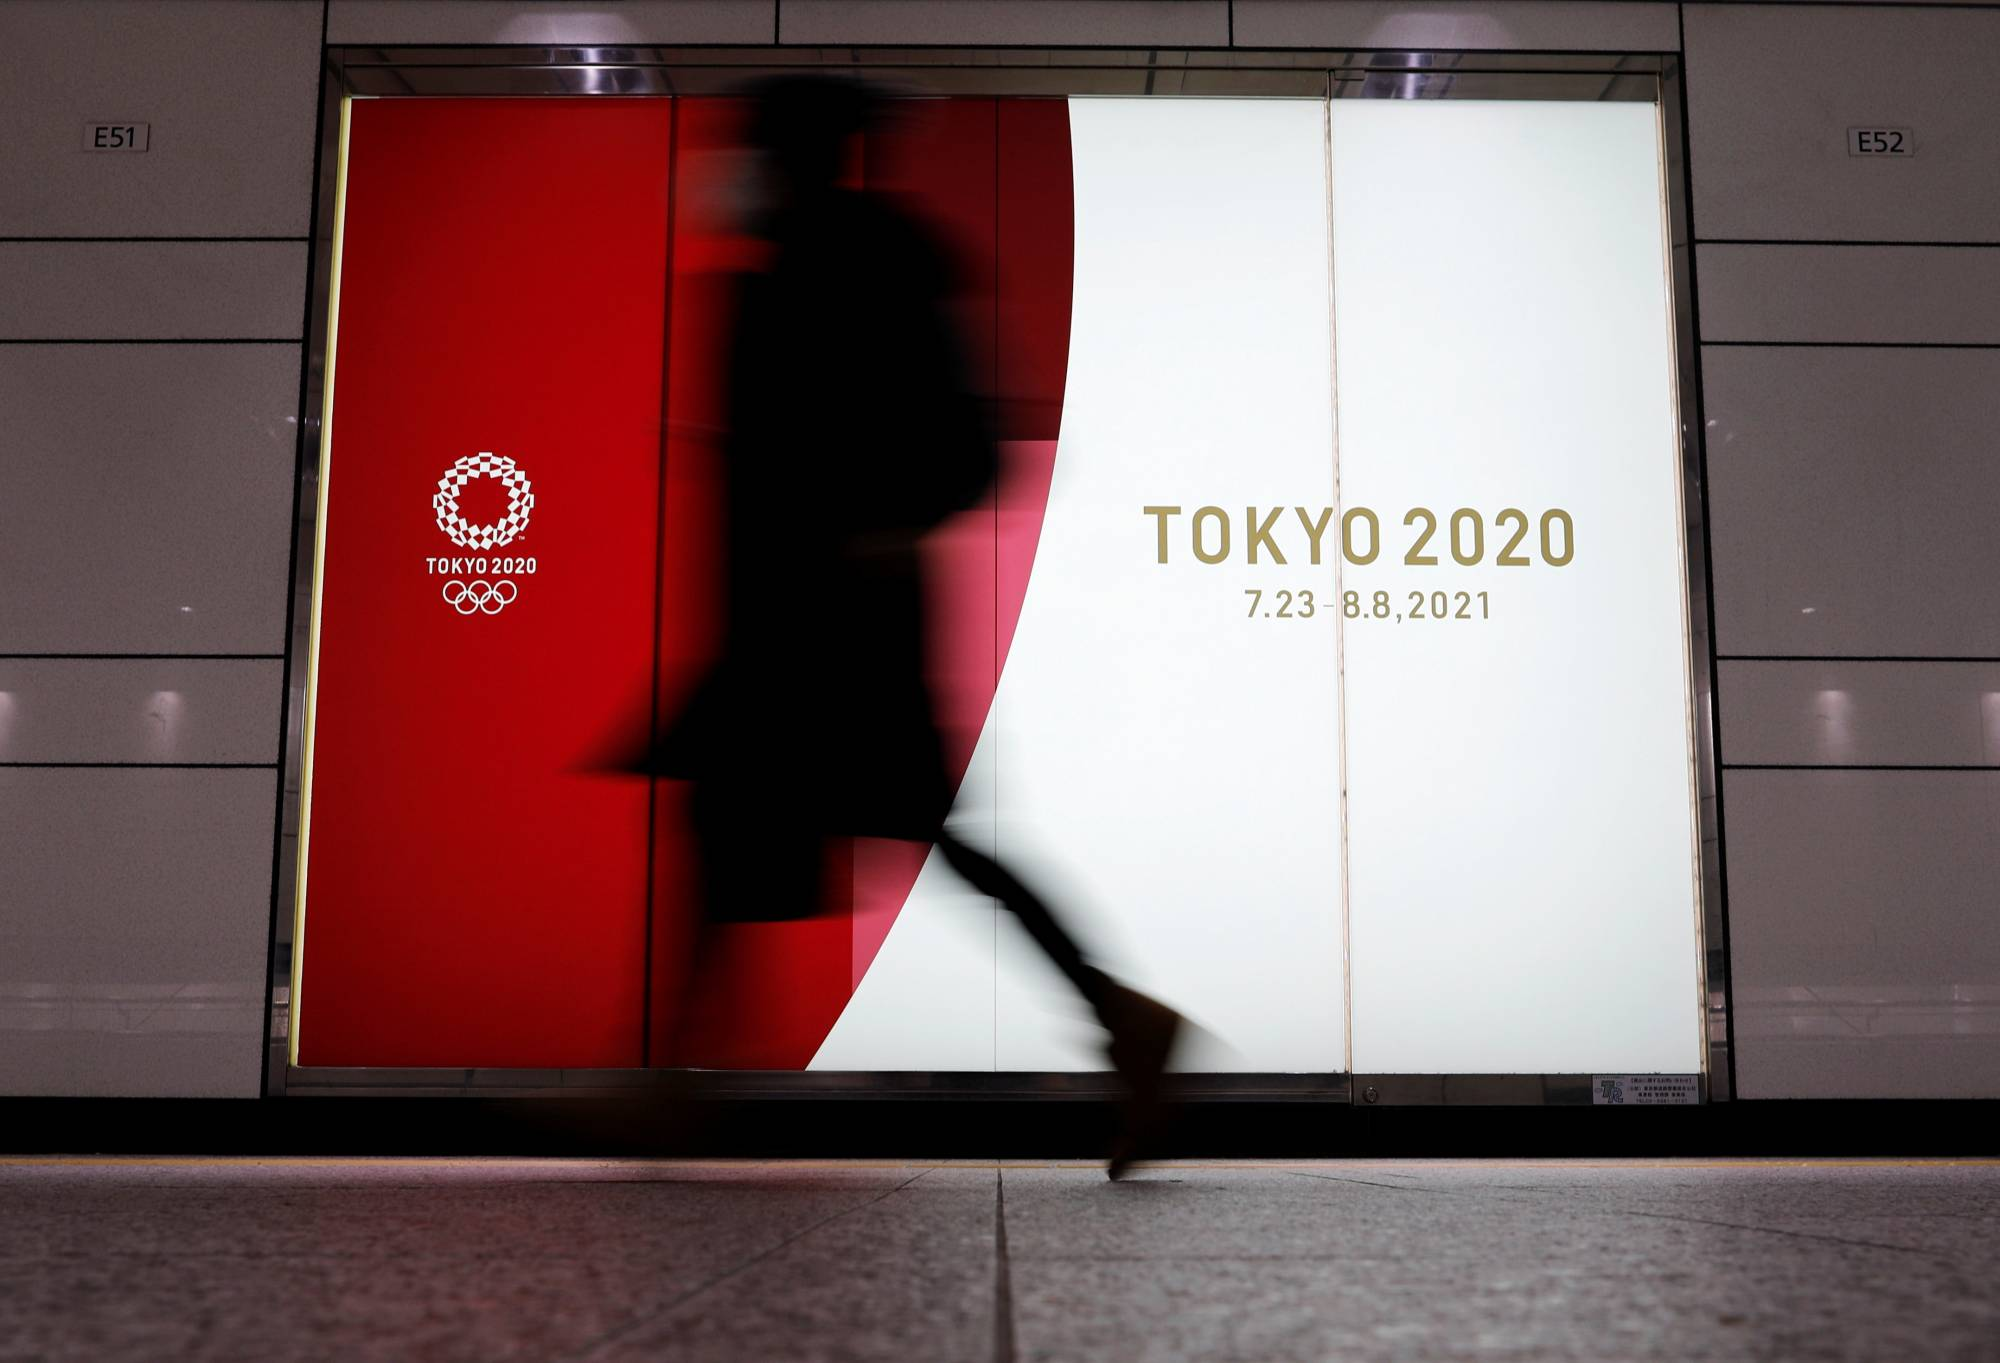 A person walks past an advertisement for the 2020 Tokyo Olympics on Jan. 22.  | REUTERS